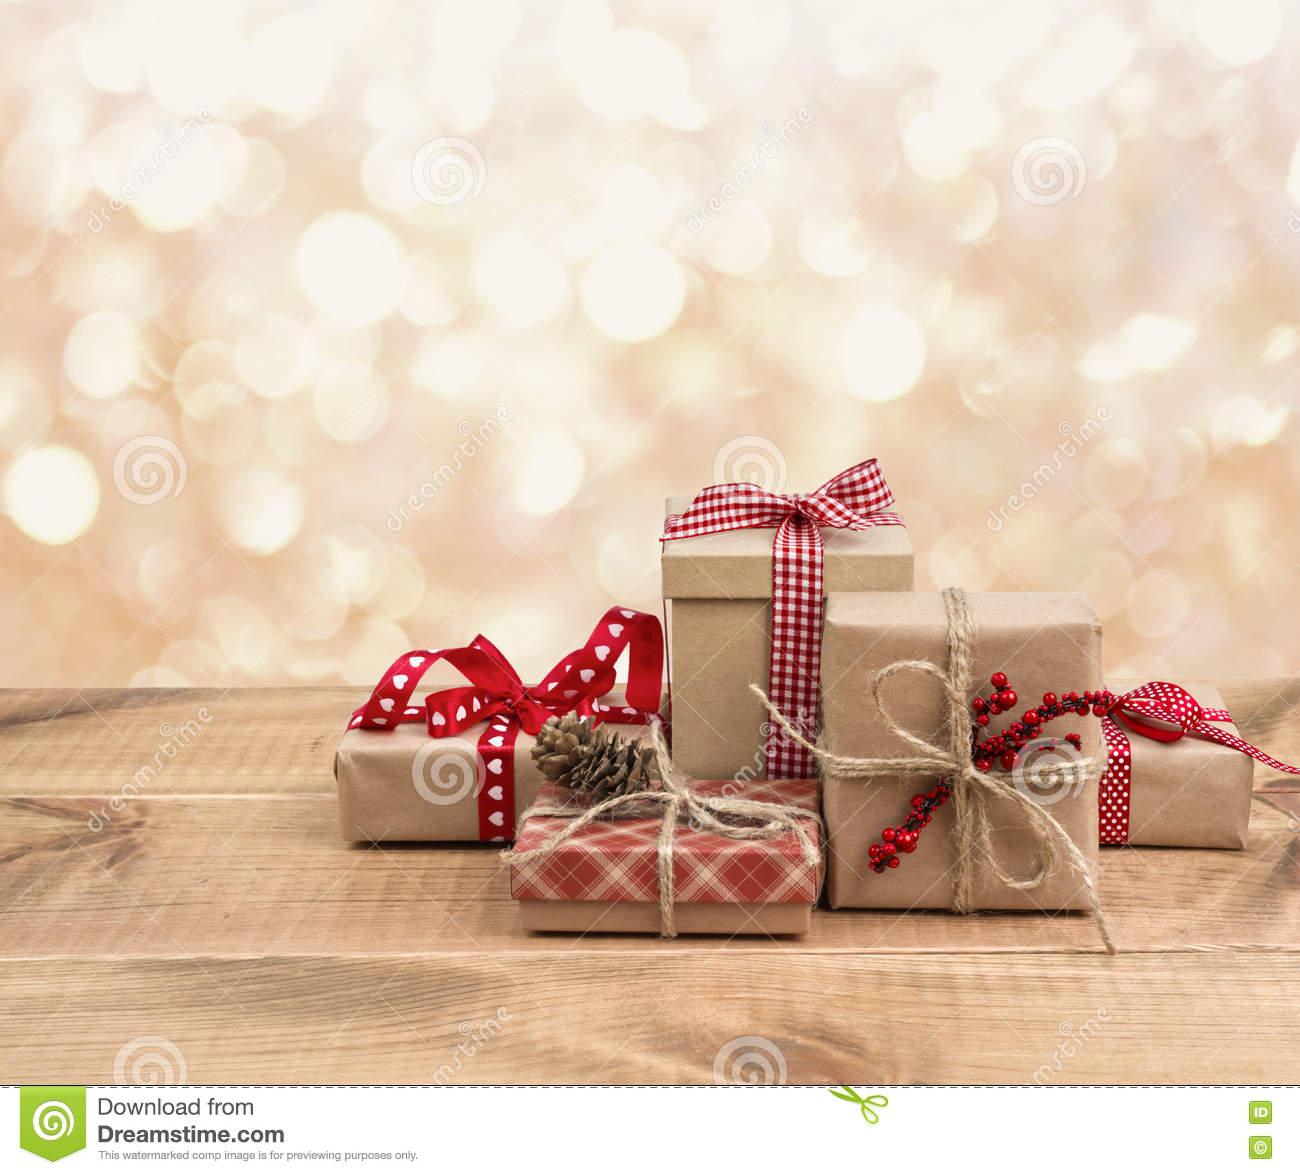 Christmas Gift Background: Christmas Gift Boxes On Wooden Table Over Abstract Lights